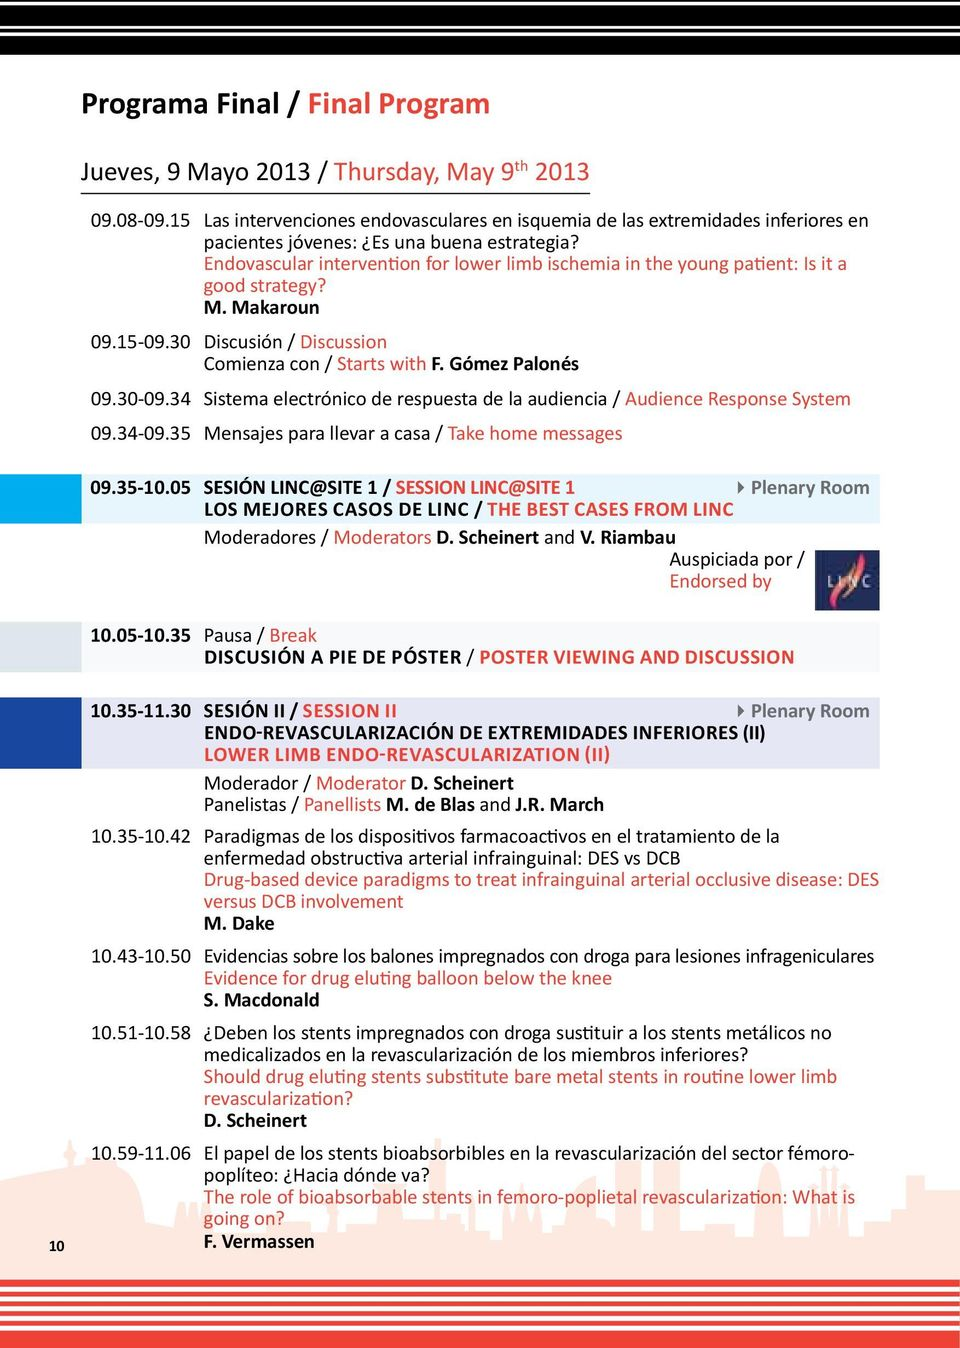 Endovascular intervention for lower limb ischemia in the young patient: Is it a good strategy? M. Makaroun 09.15-09.30 Discusión / Discussion Comienza con / Starts with F. Gómez Palonés 09.30-09.